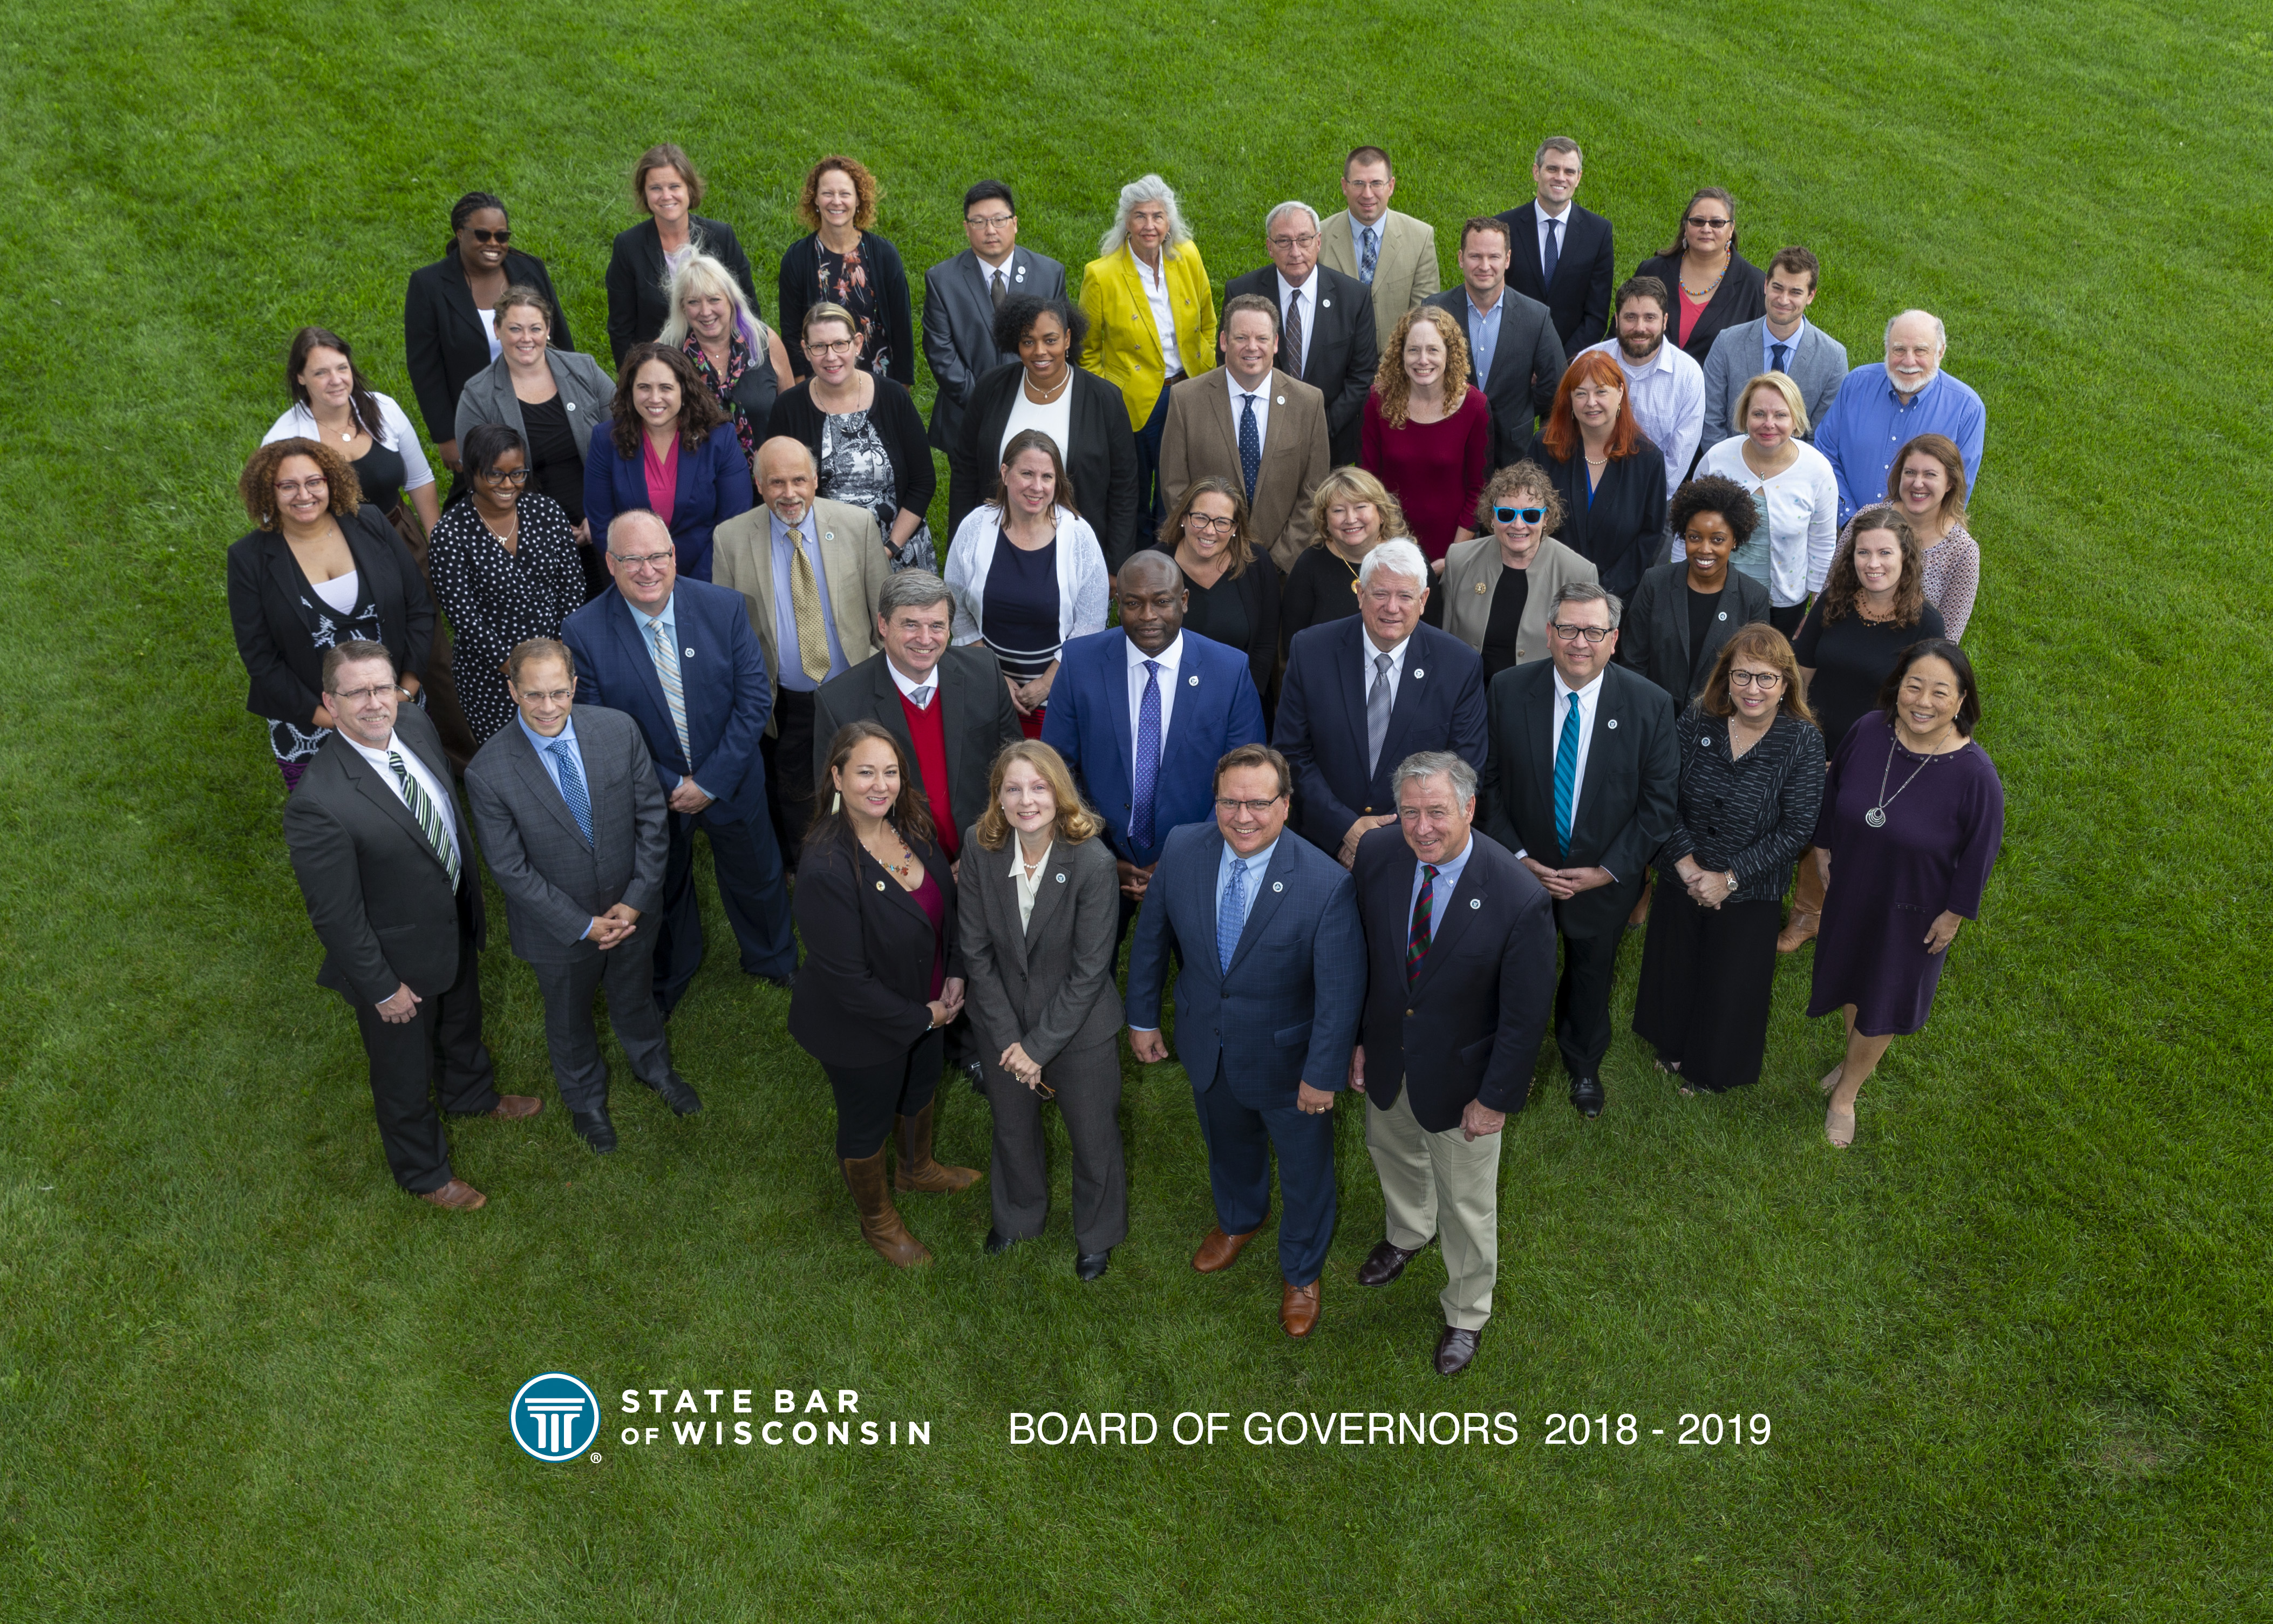 Board of Governors 2018-2019